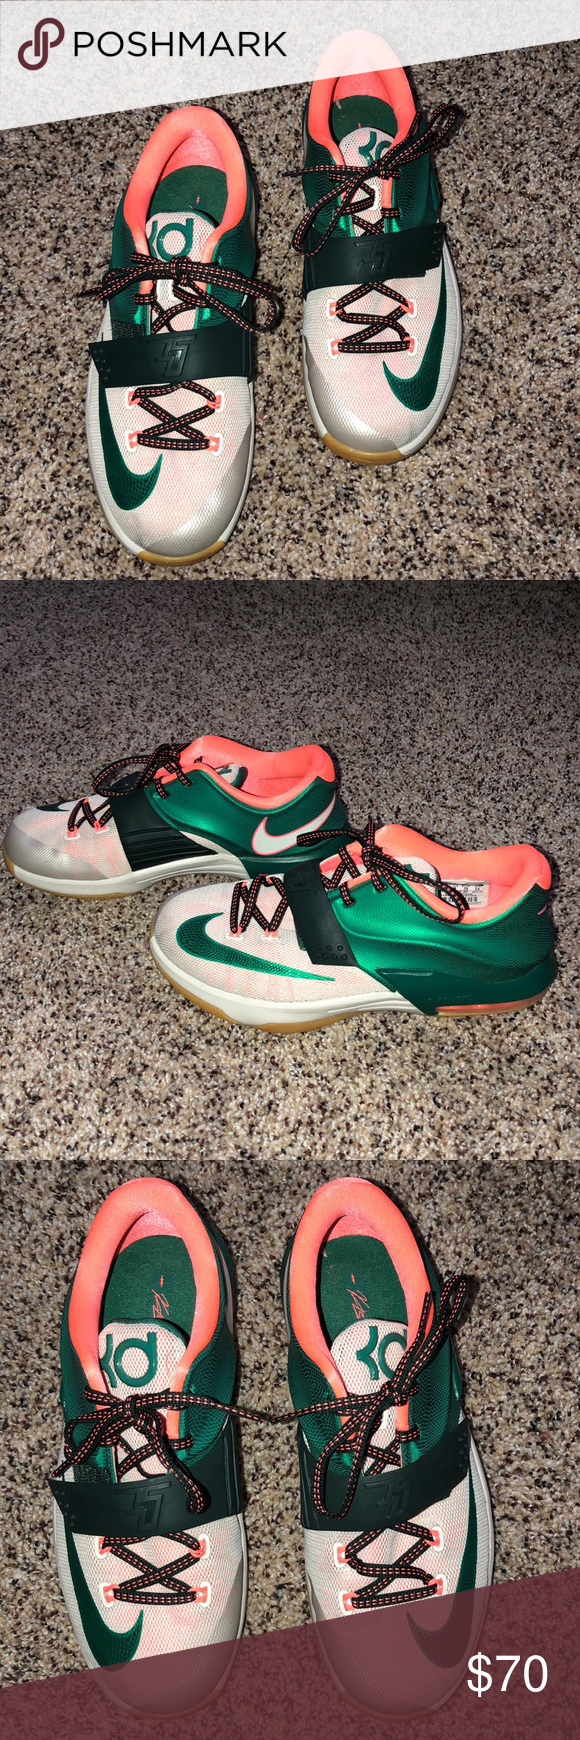 09bc9bb6bcfd Nike Kevin Durant Nike Kevin Durant shoes 5.5y which is a 7 in women s Very  good condition Only worn a couple of times Can send more pictures if wanted  Nike ...